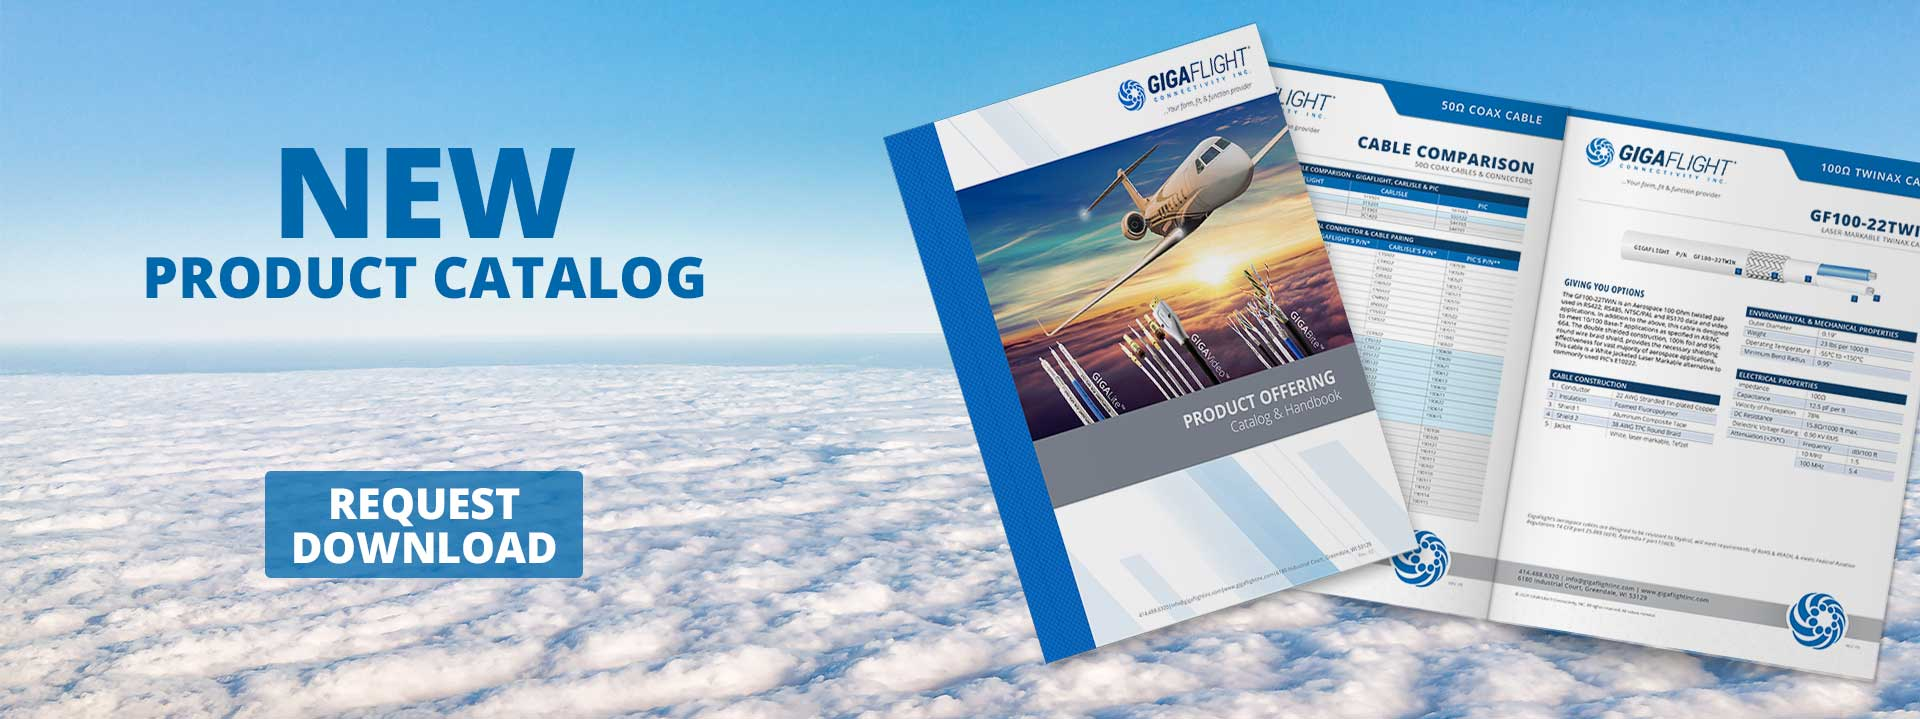 Aviation wiring product catalog